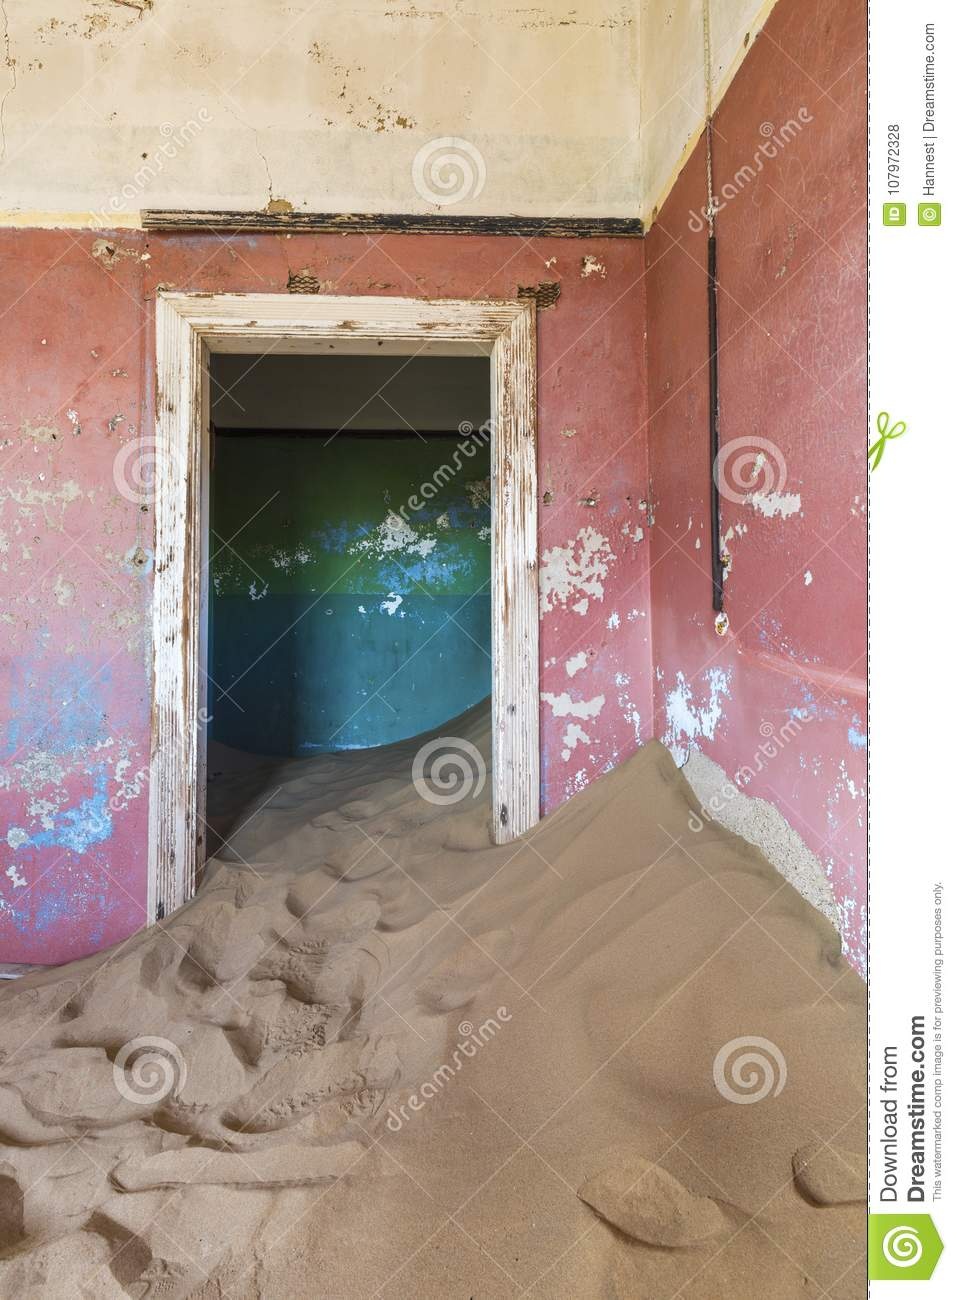 Desert Sand Filling Up The Building Stock Photo - Image of